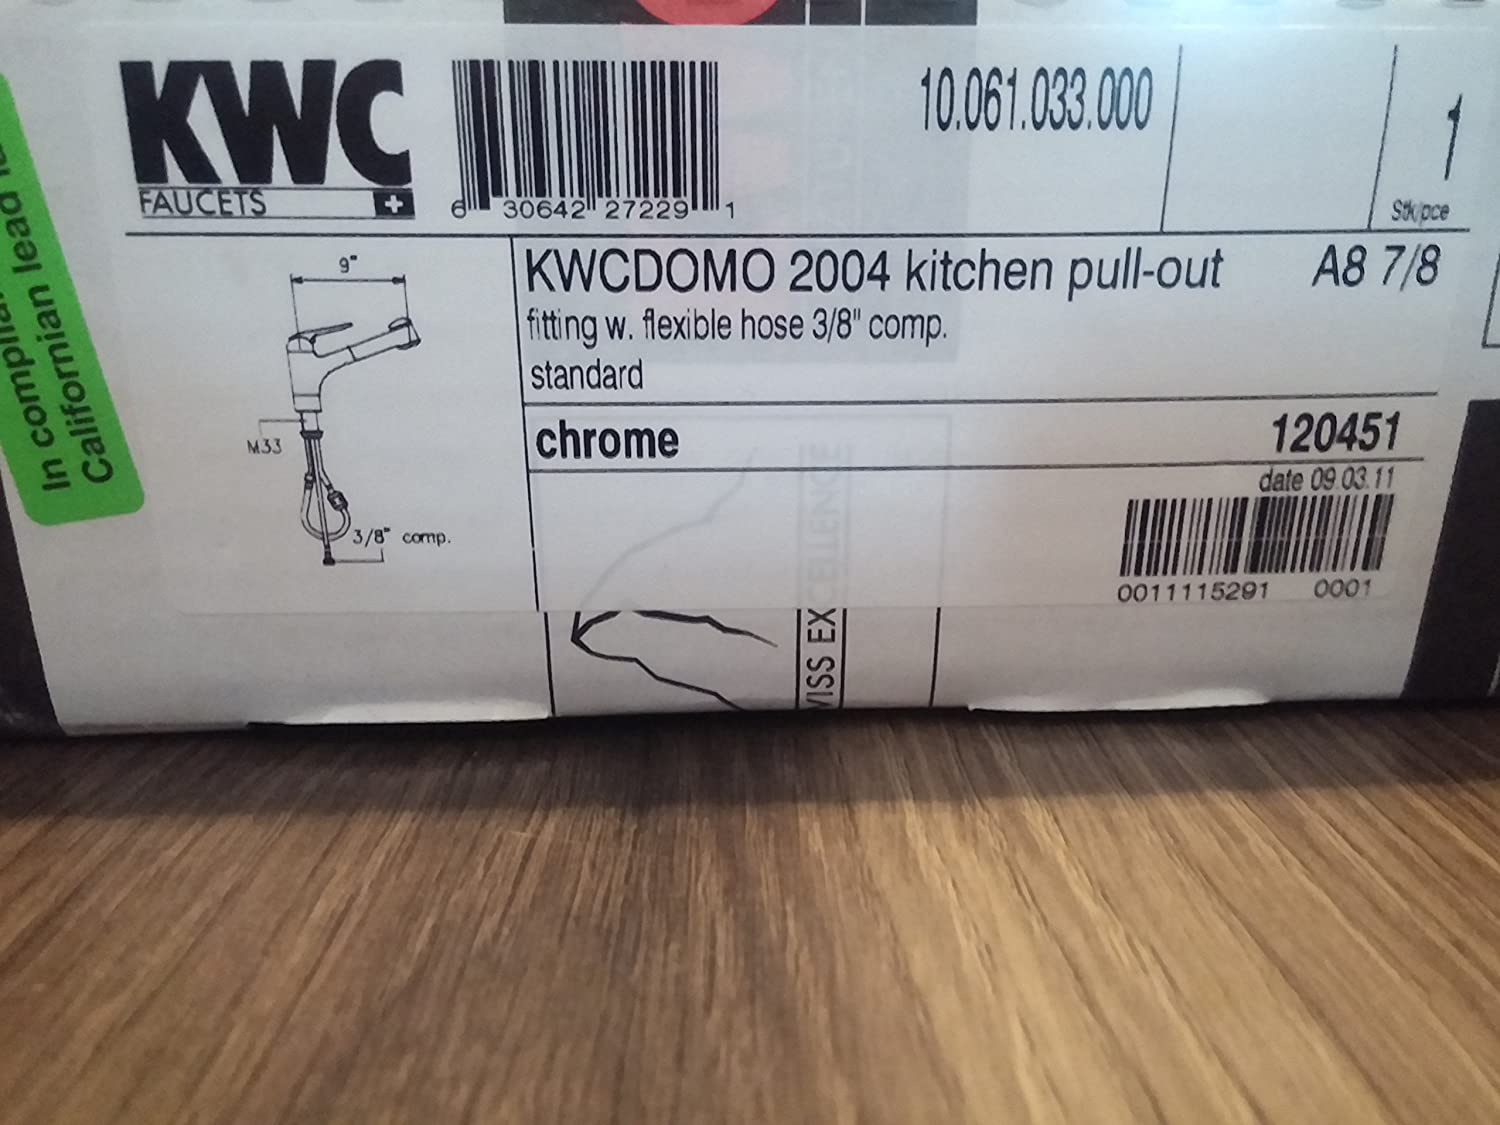 Kwc Kitchen Faucet Parts Kwc 10061033000 Domo 9 Pull Out Kitchen Faucet Top Lever